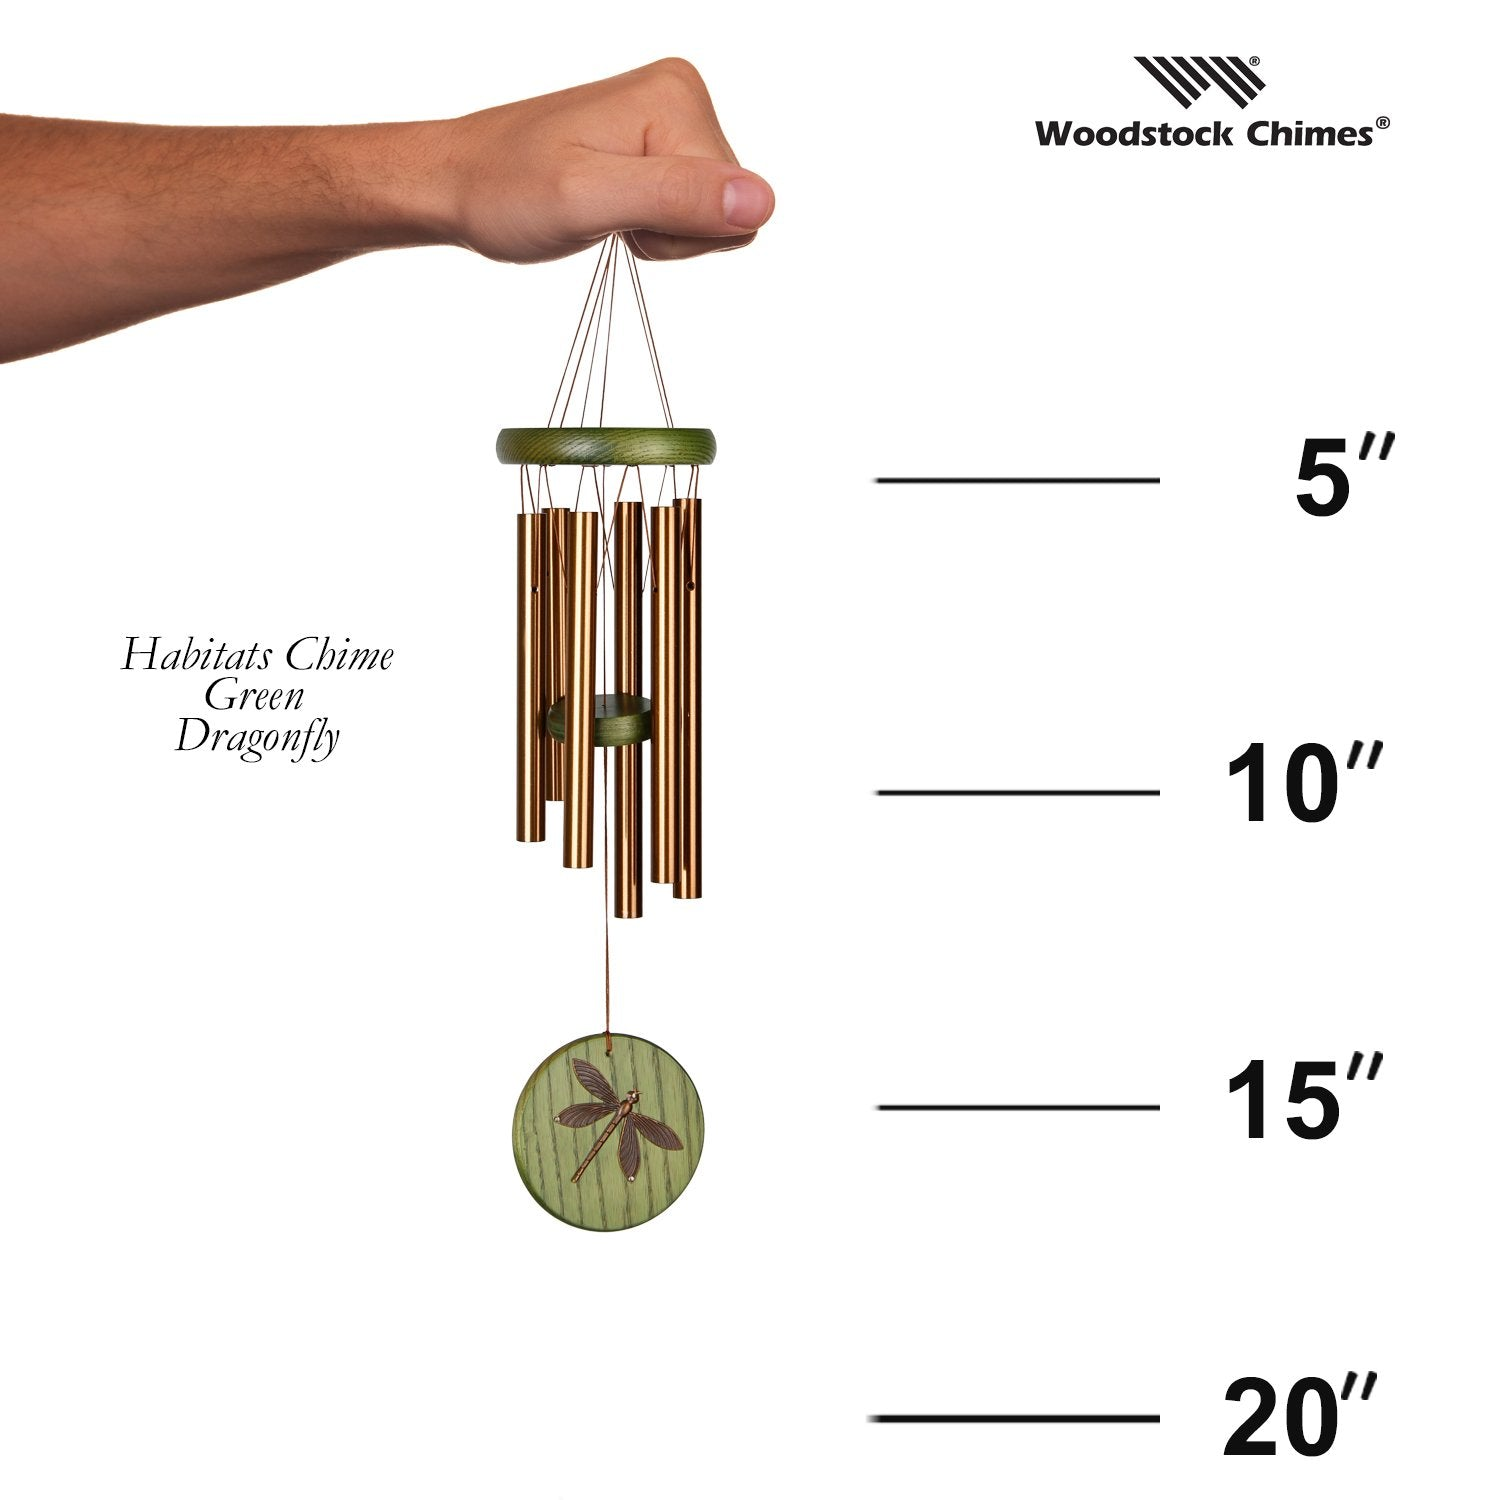 Habitats Chime - Green, Dragonfly proportion image